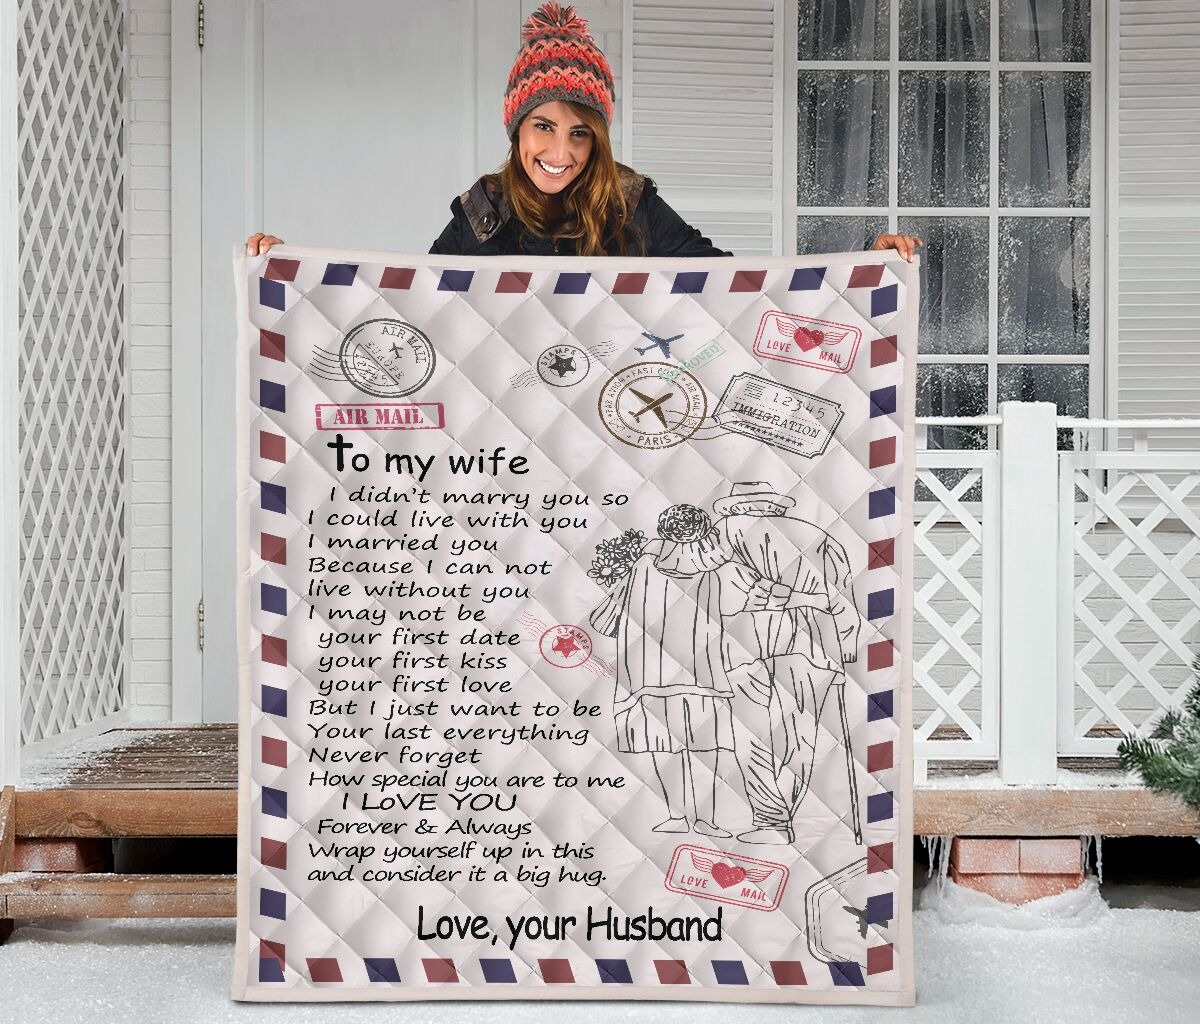 Letter air mail to my wife your husband quilt blanket 2